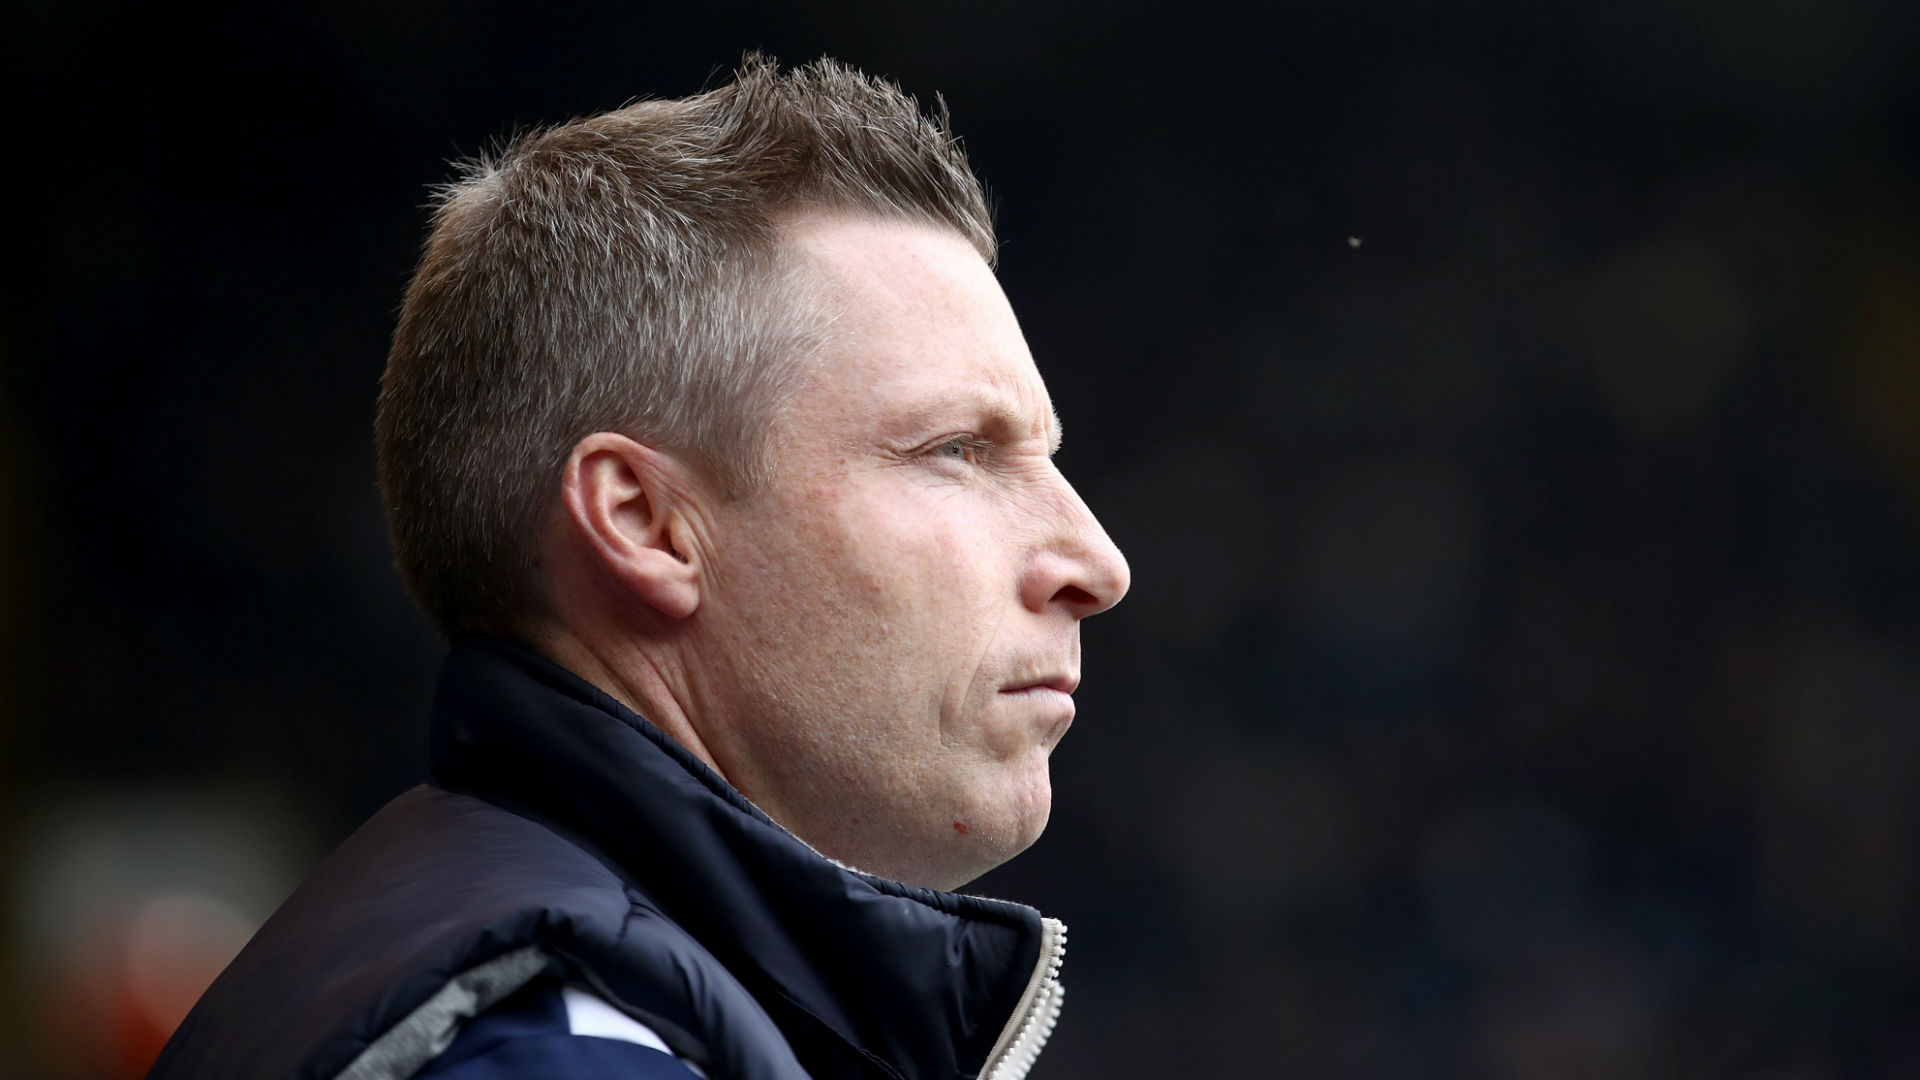 Millwall boss Harris condemns alleged racist abuse of Son | FOOTBALL